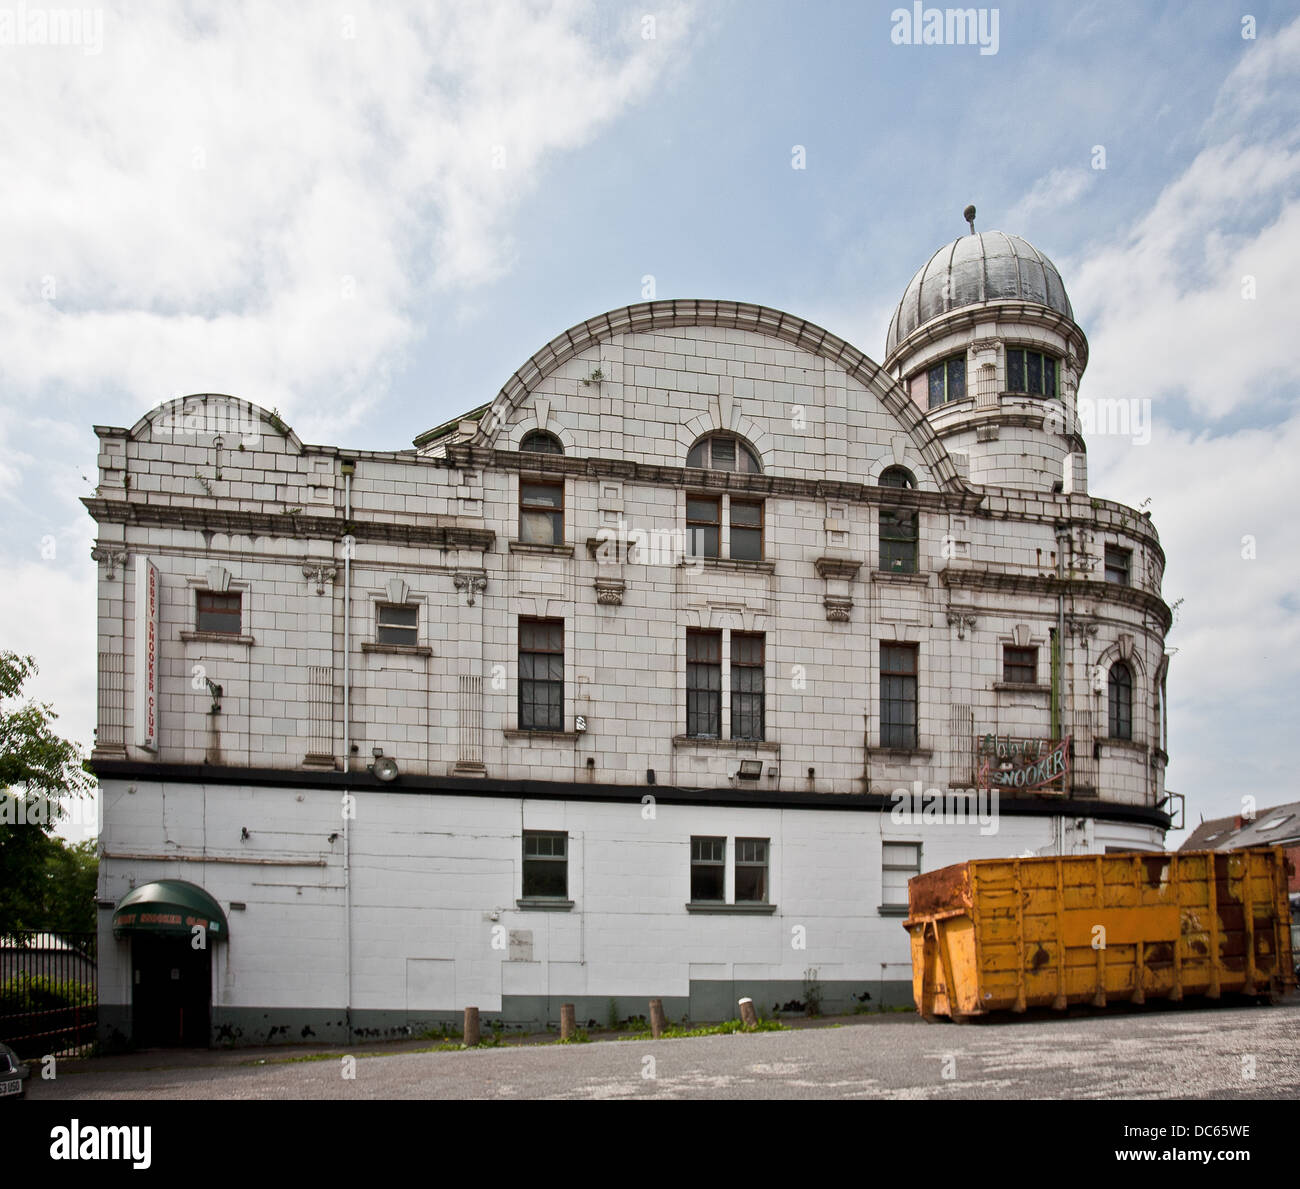 Abbeydale Picture House Abbeydale Road Sheffield England UK Europe - Stock Image